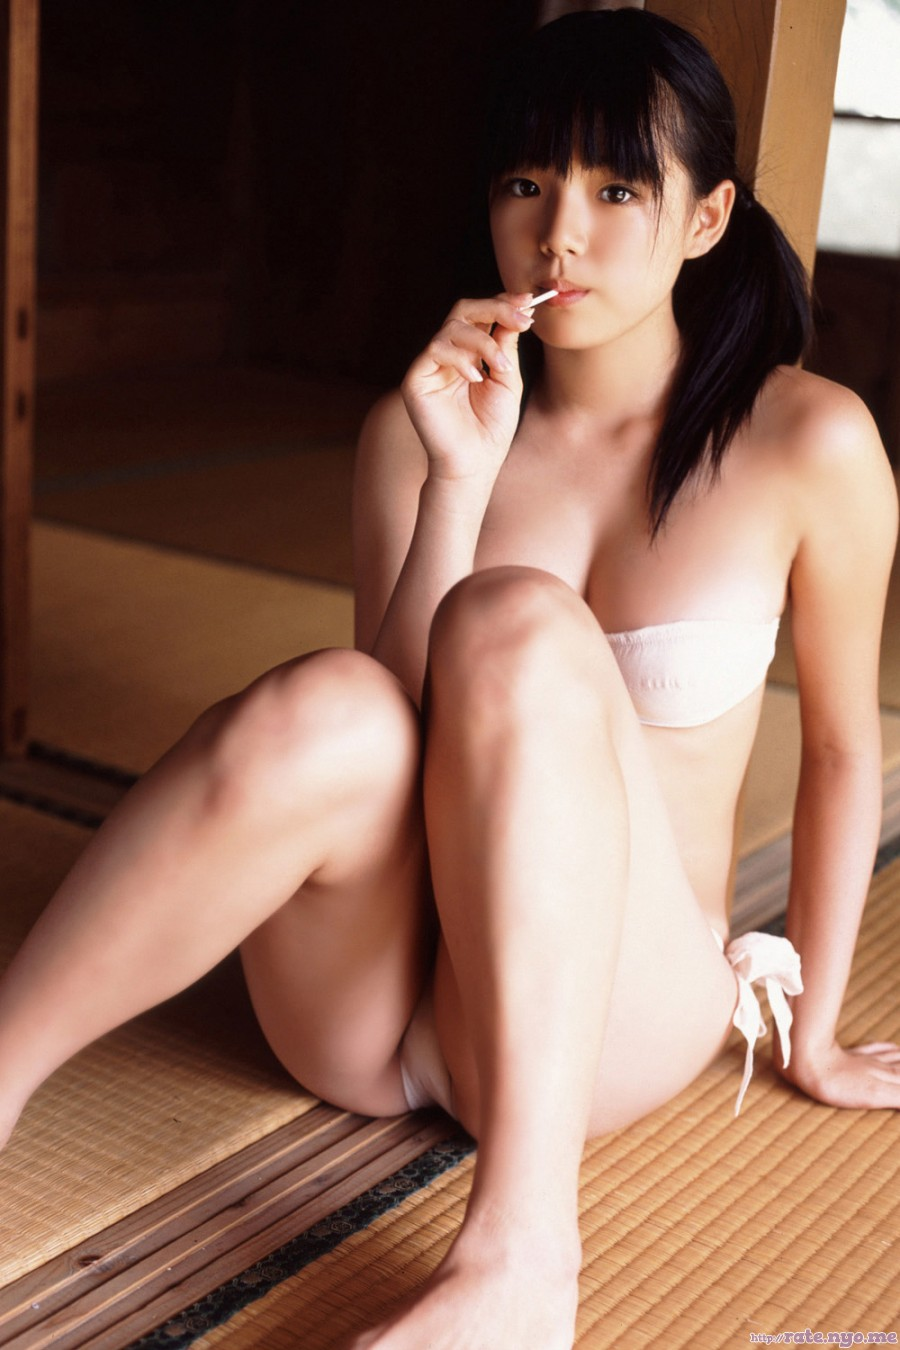 ai_shinozaki bikini breasts cleavage japanese legs sitting thighs